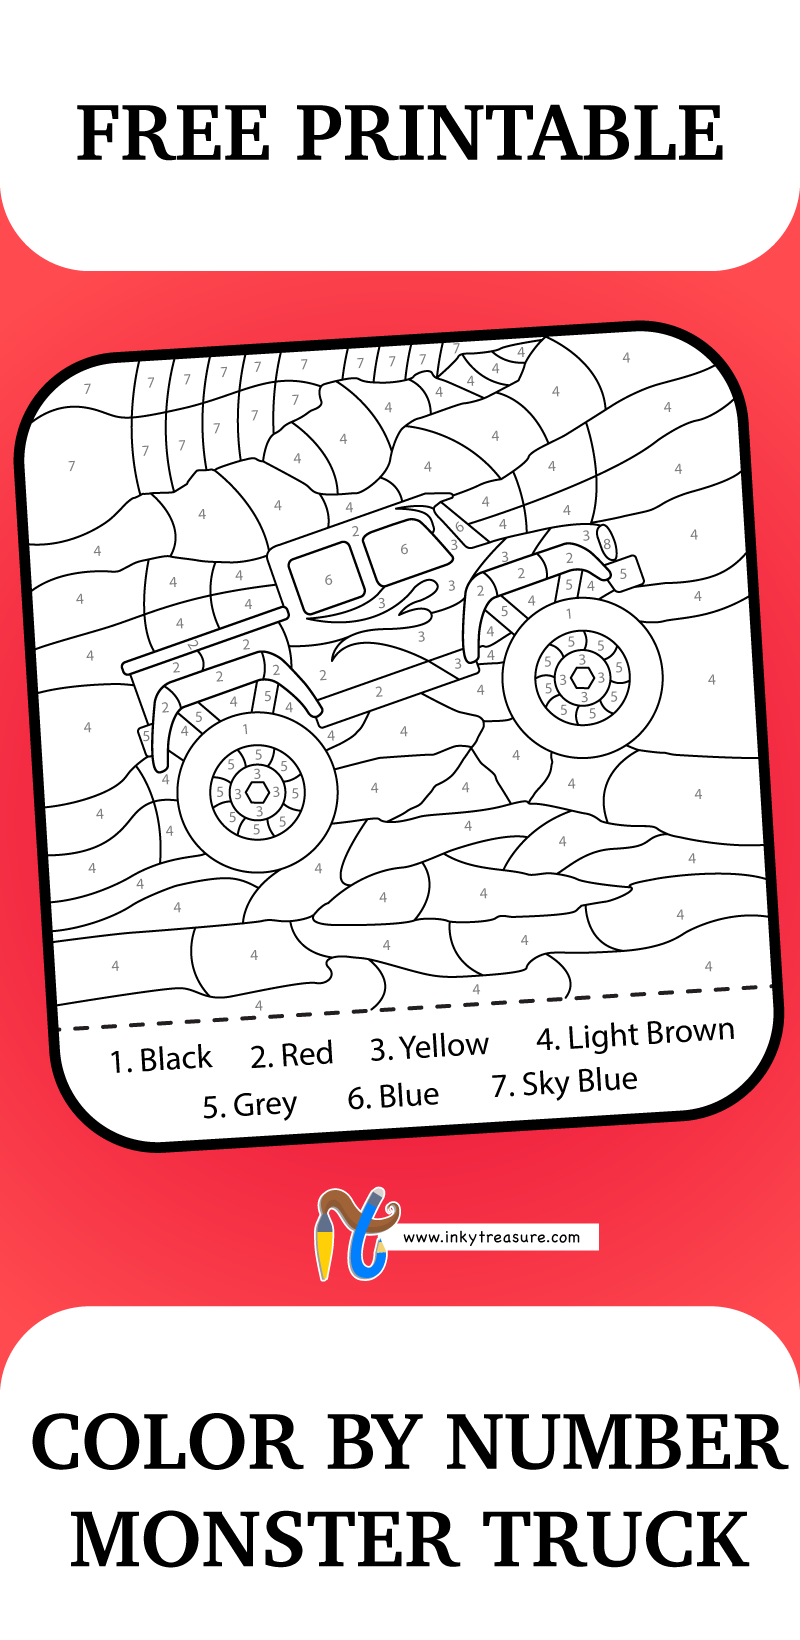 This Color By Number Monster Truck Worksheet Will Give Your Child Some Practice Following Directions Free Printable Puzzles Numbers For Kids Coloring For Kids [ 1640 x 800 Pixel ]